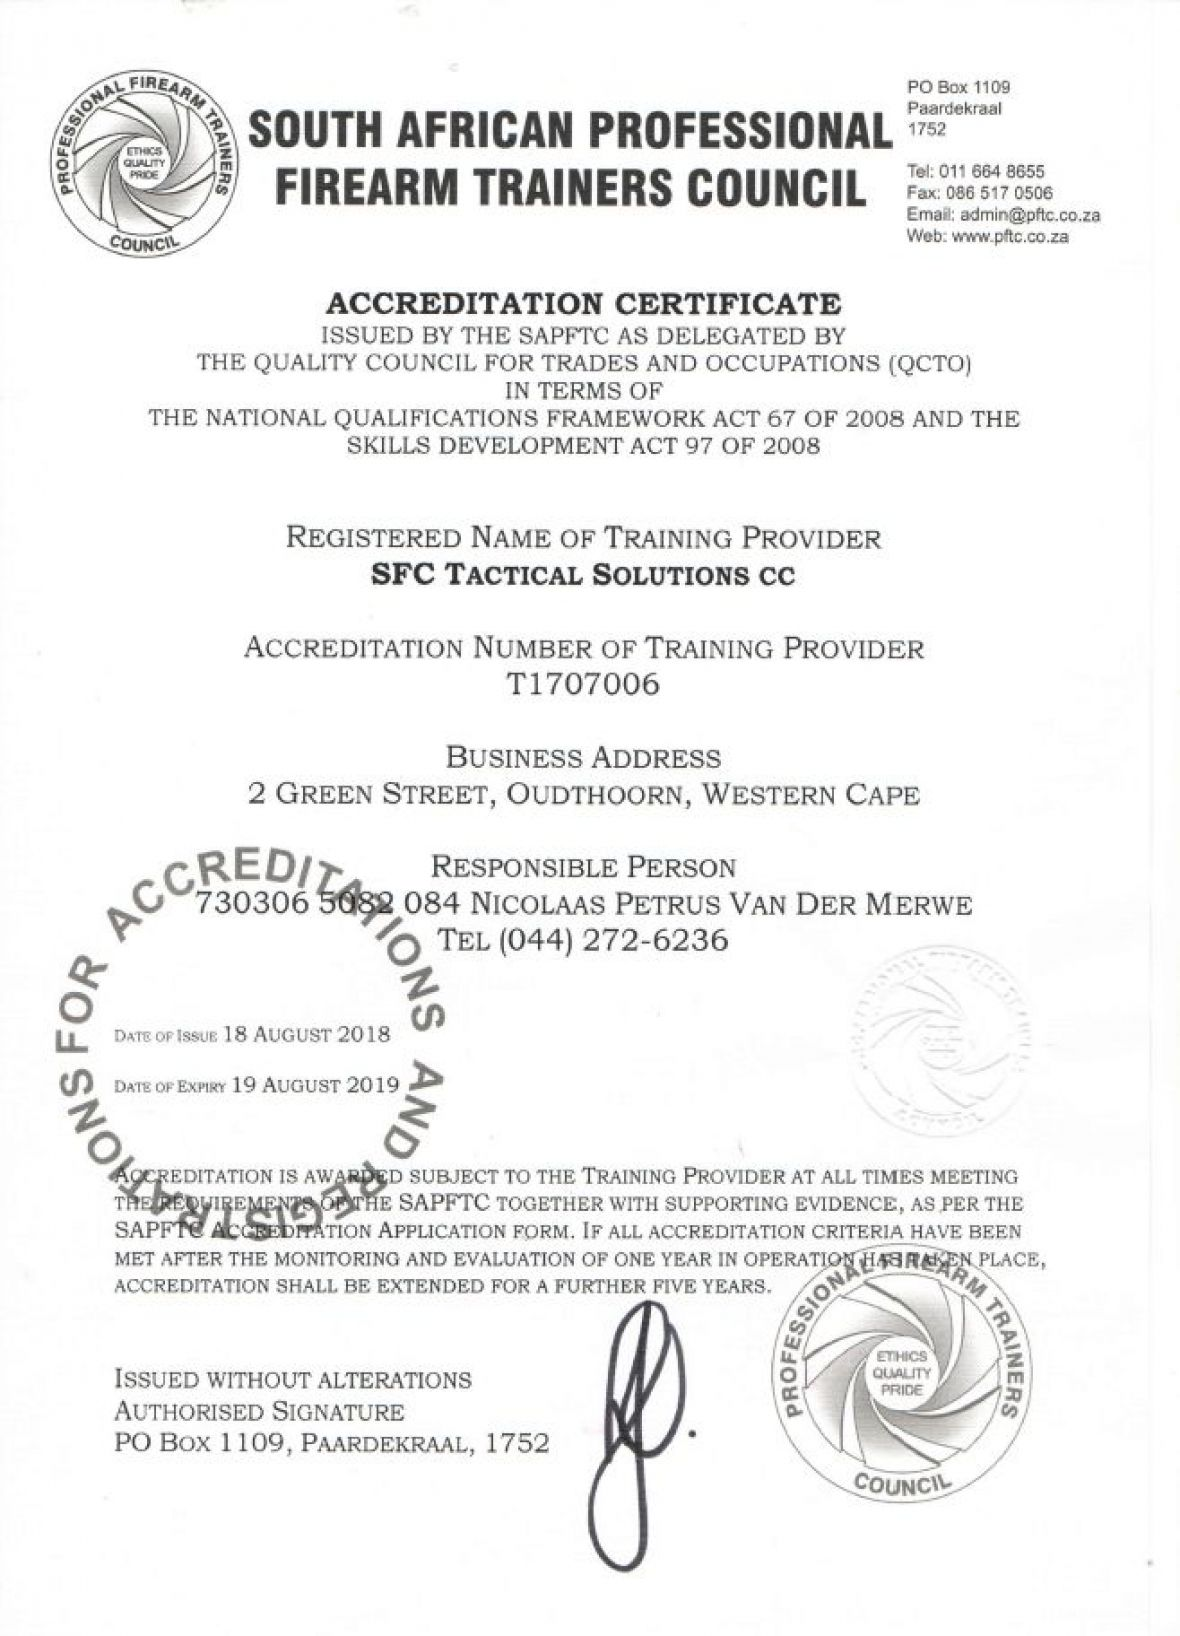 South African Firearms Training Council Accreditation